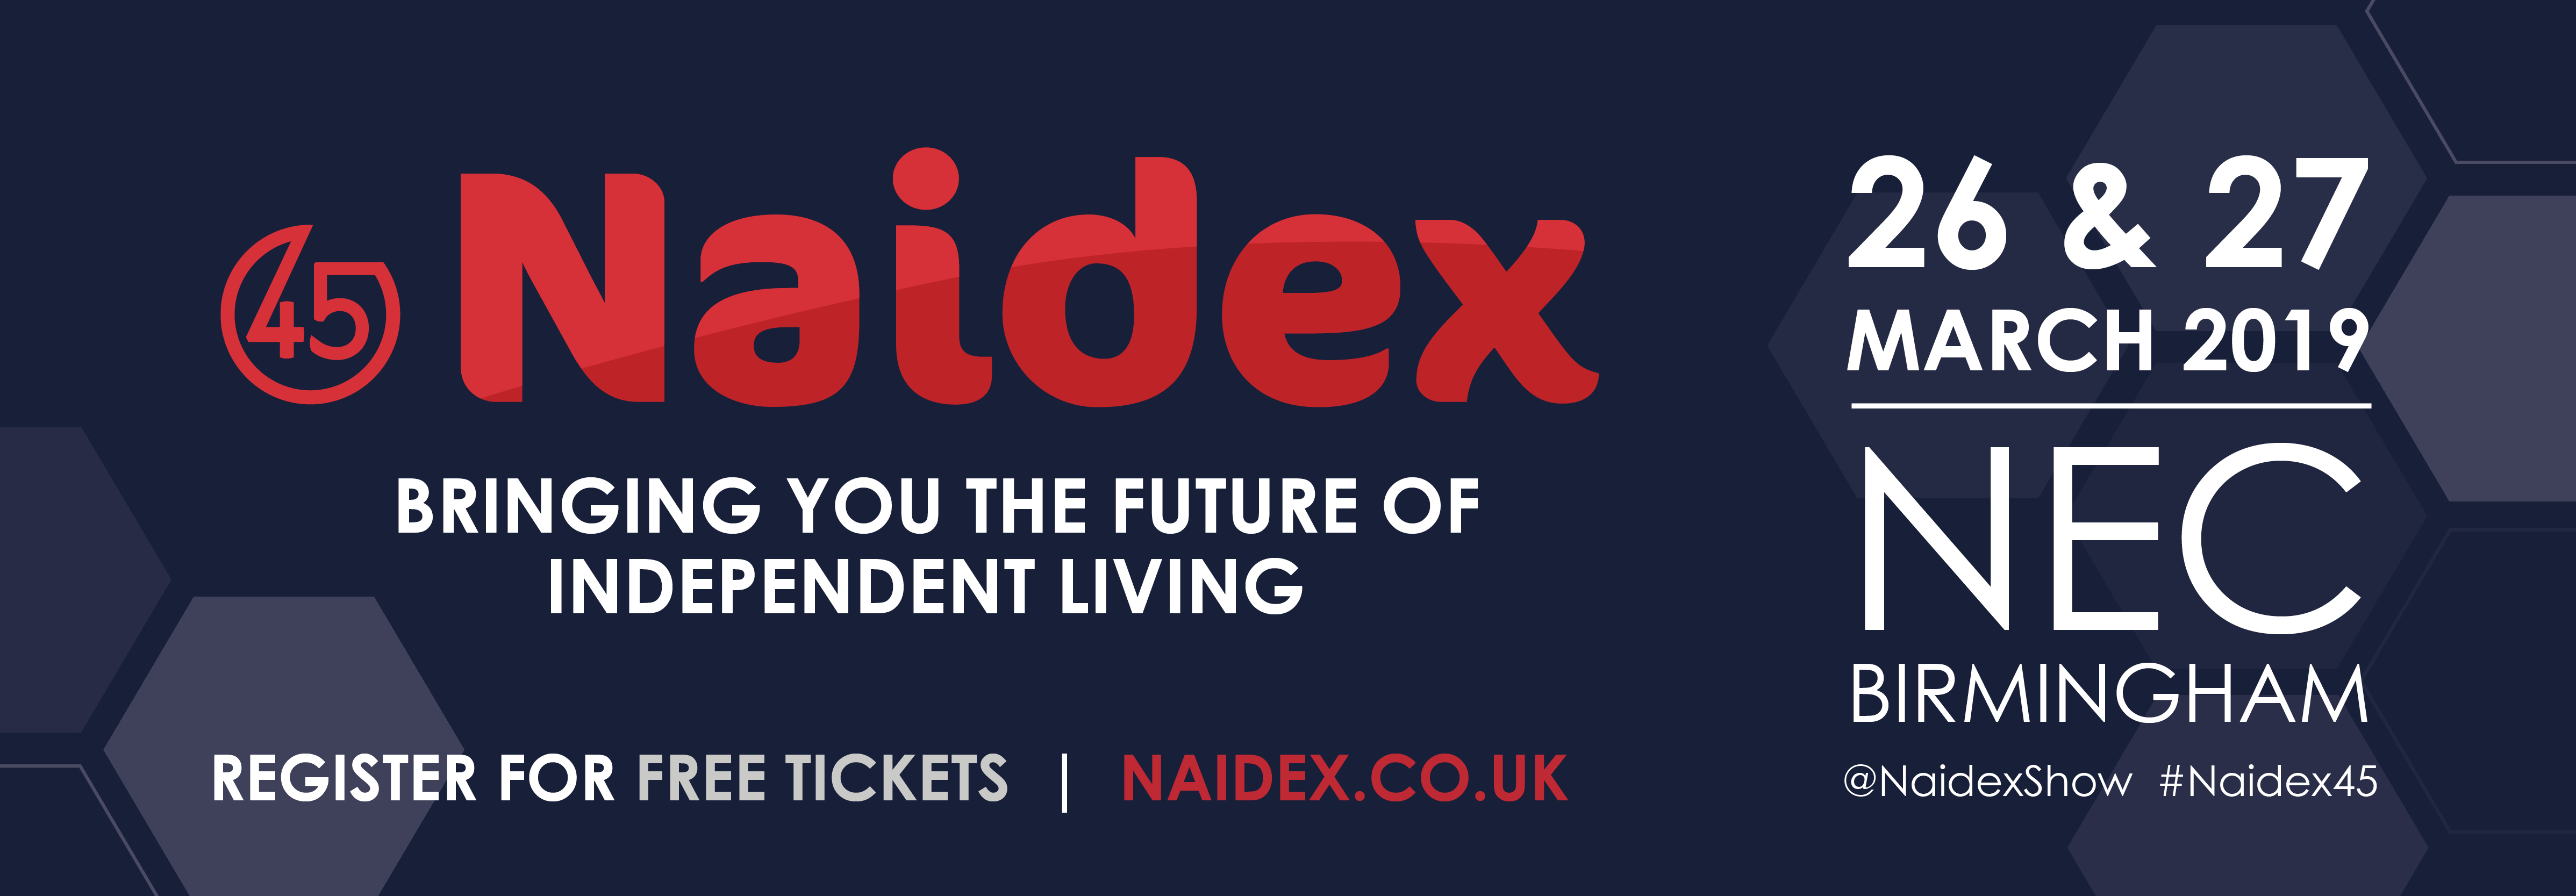 Naidex logo and link